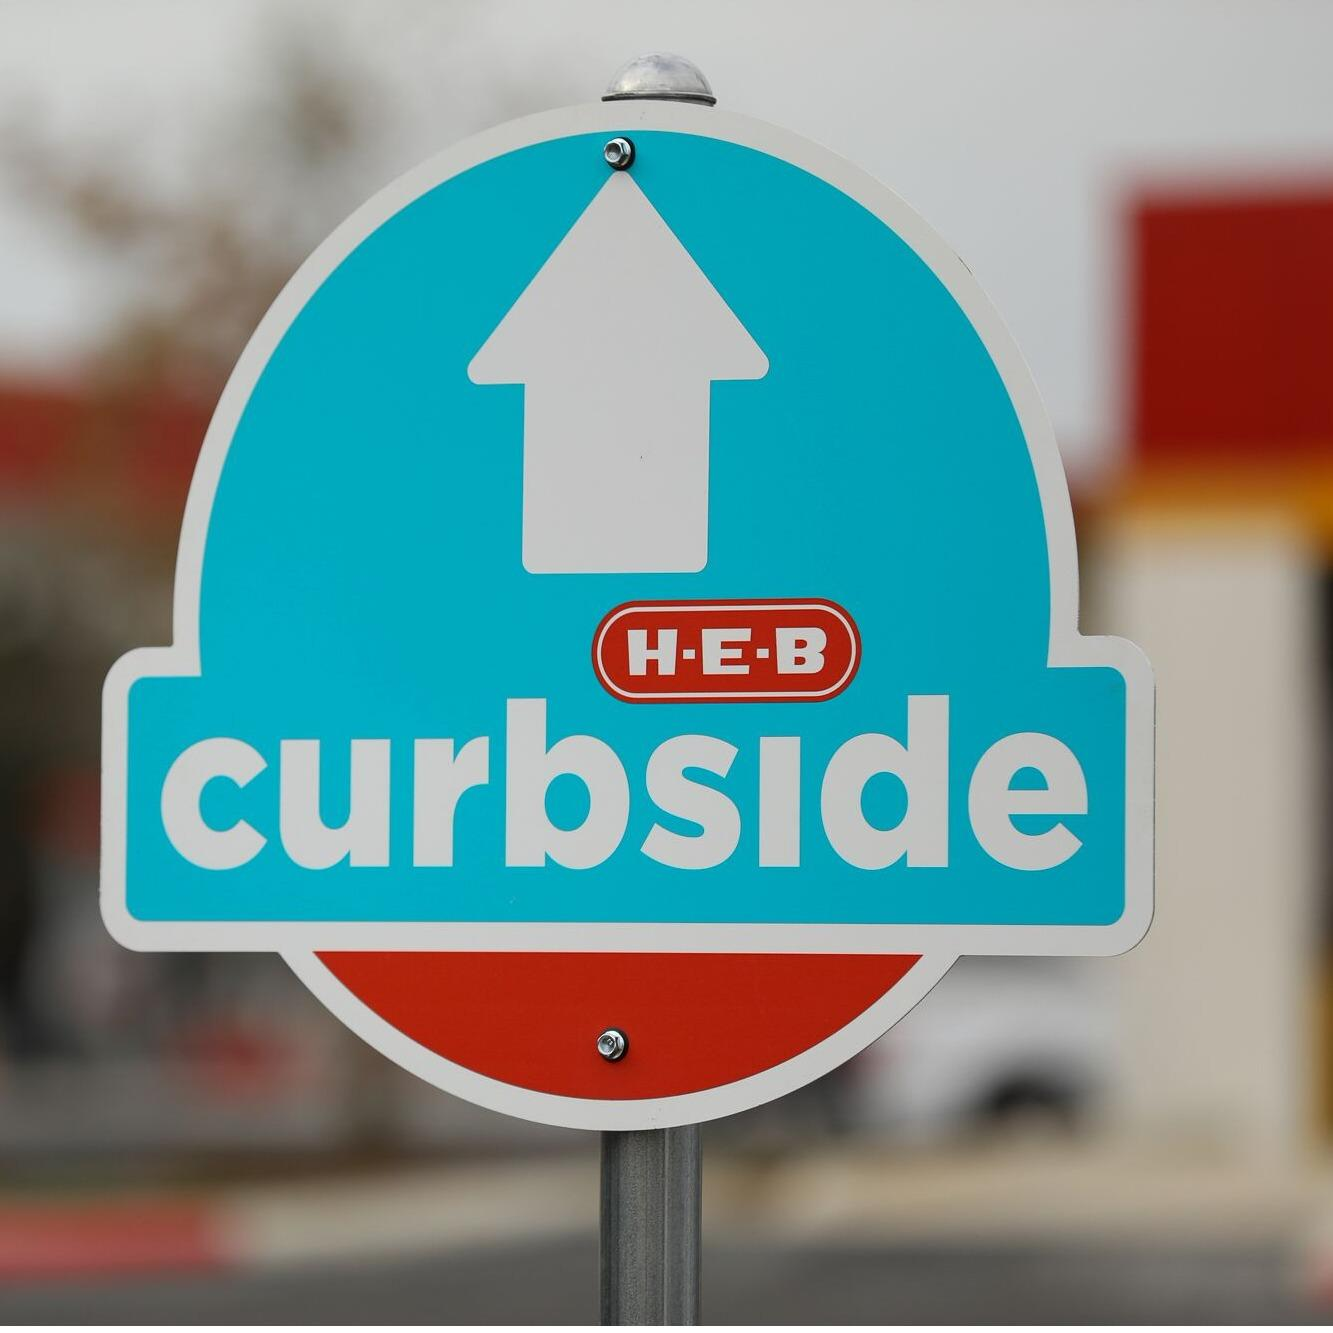 H-E-B Curbside Pickup & Home Delivery